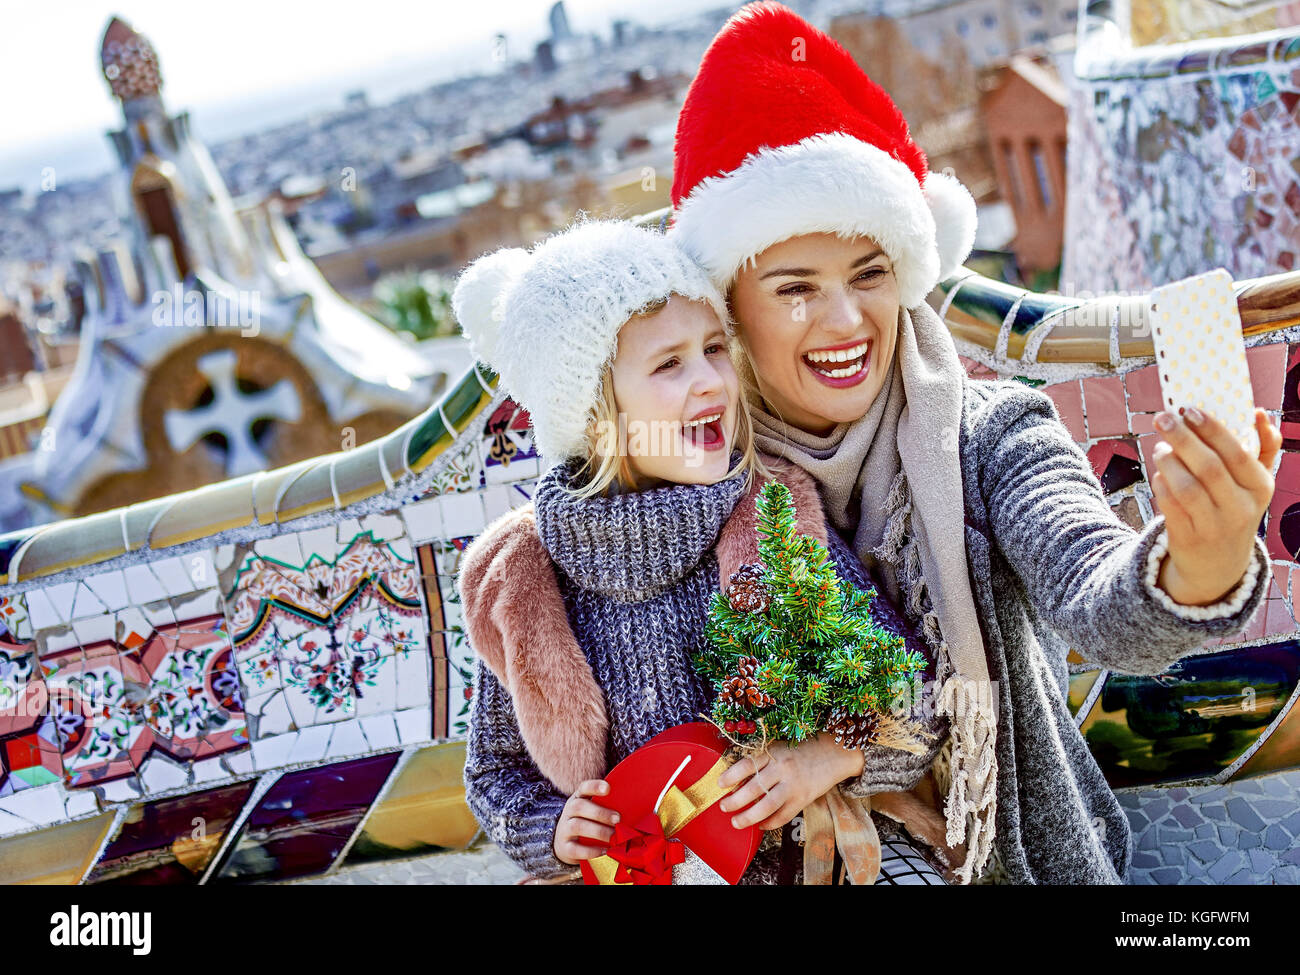 Winter wonderland in Barcelona at Christmas. happy modern mother and child tourists with a little Christmas tree - Stock Image